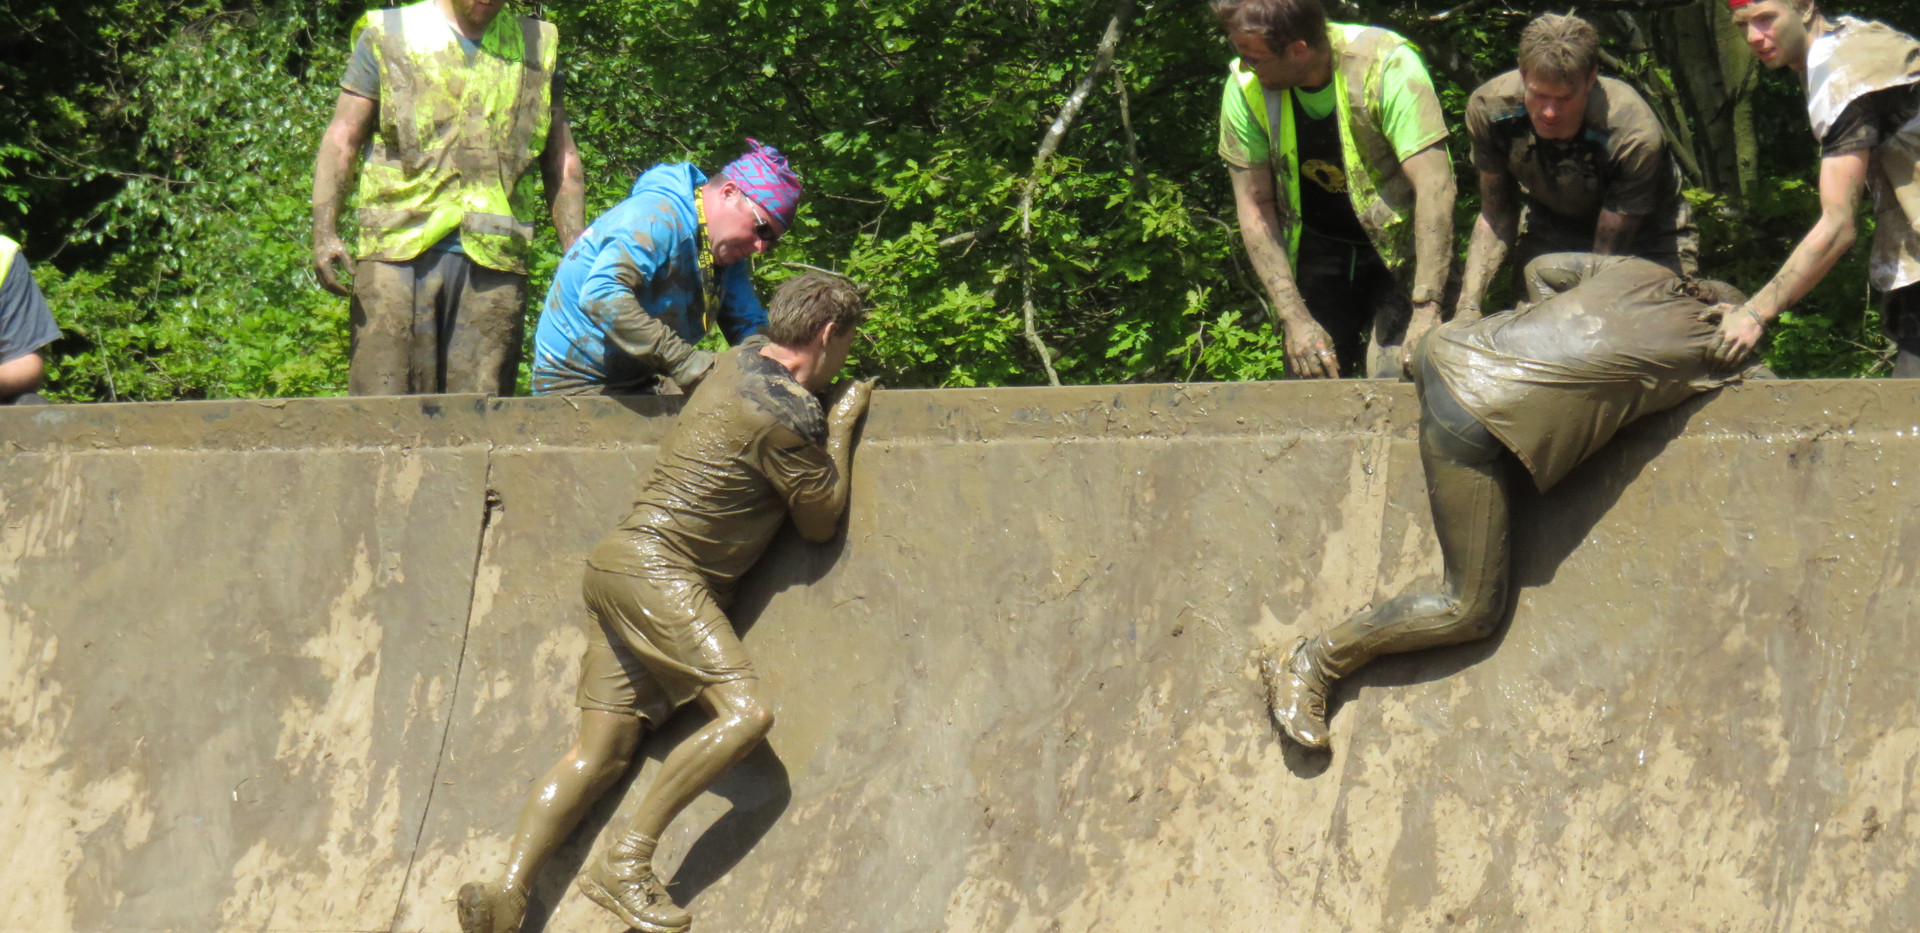 Nuclear Races muddy wall! Outdoor Fitness | Personal Training | Personal Trainer | Gym | Weights | Fitness | Exercise | Group | One to One | Harlow | Brentwood | Sawbridgeworth | Bishops Stortford | Healthy